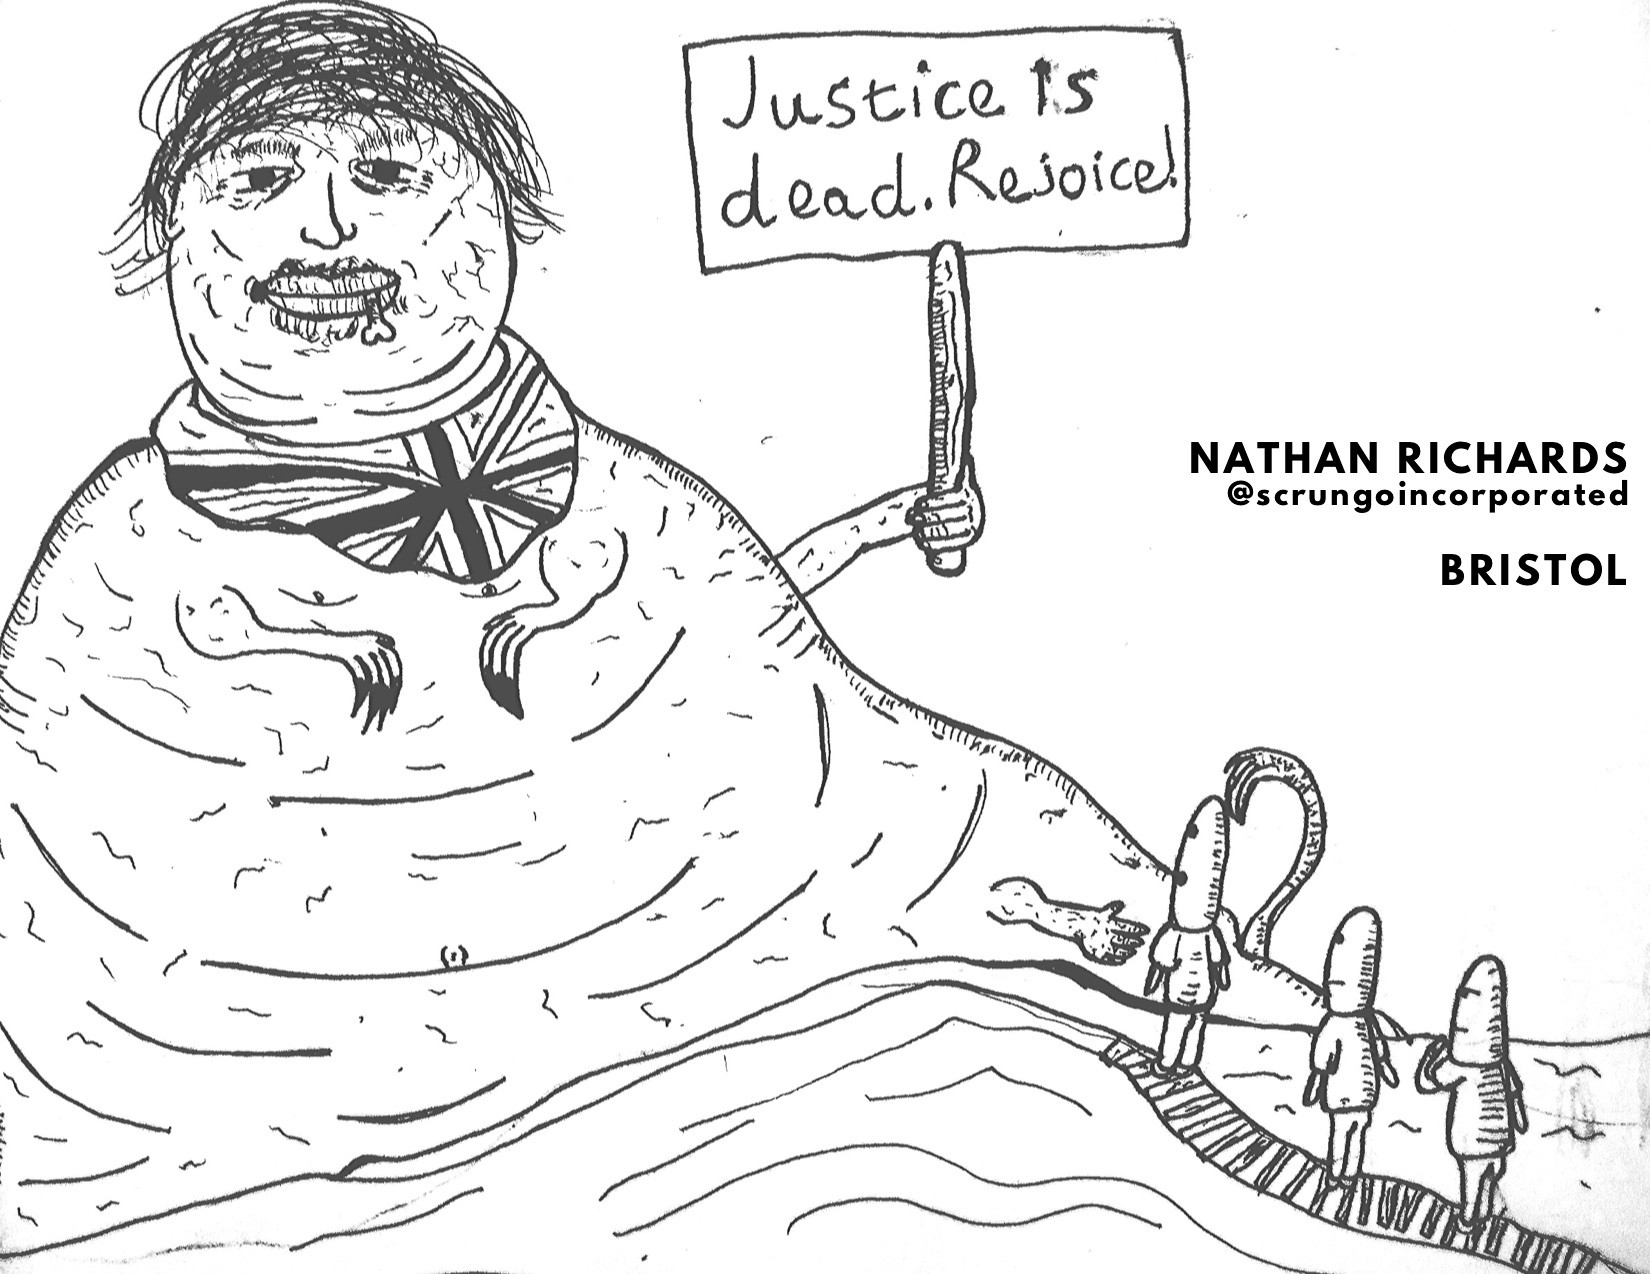 Nathan Richards